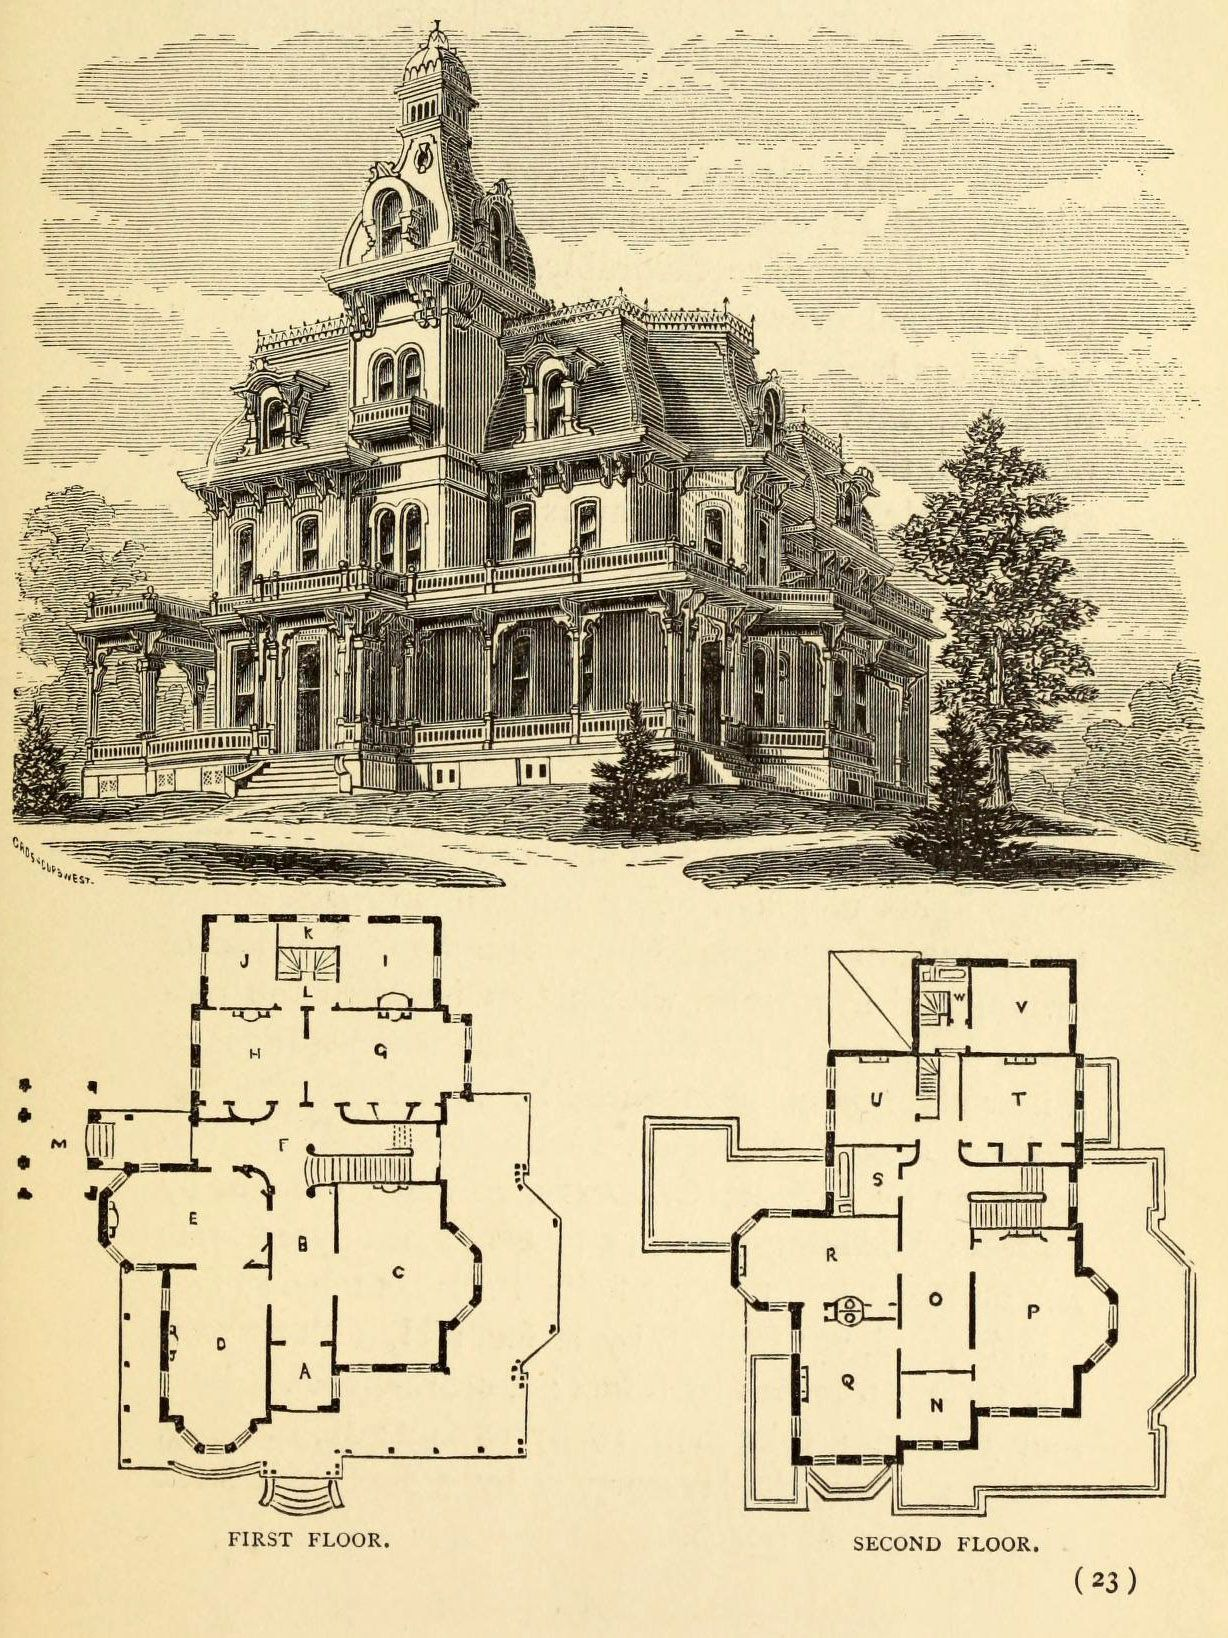 Manor House Drawing: Design For A Large Residence